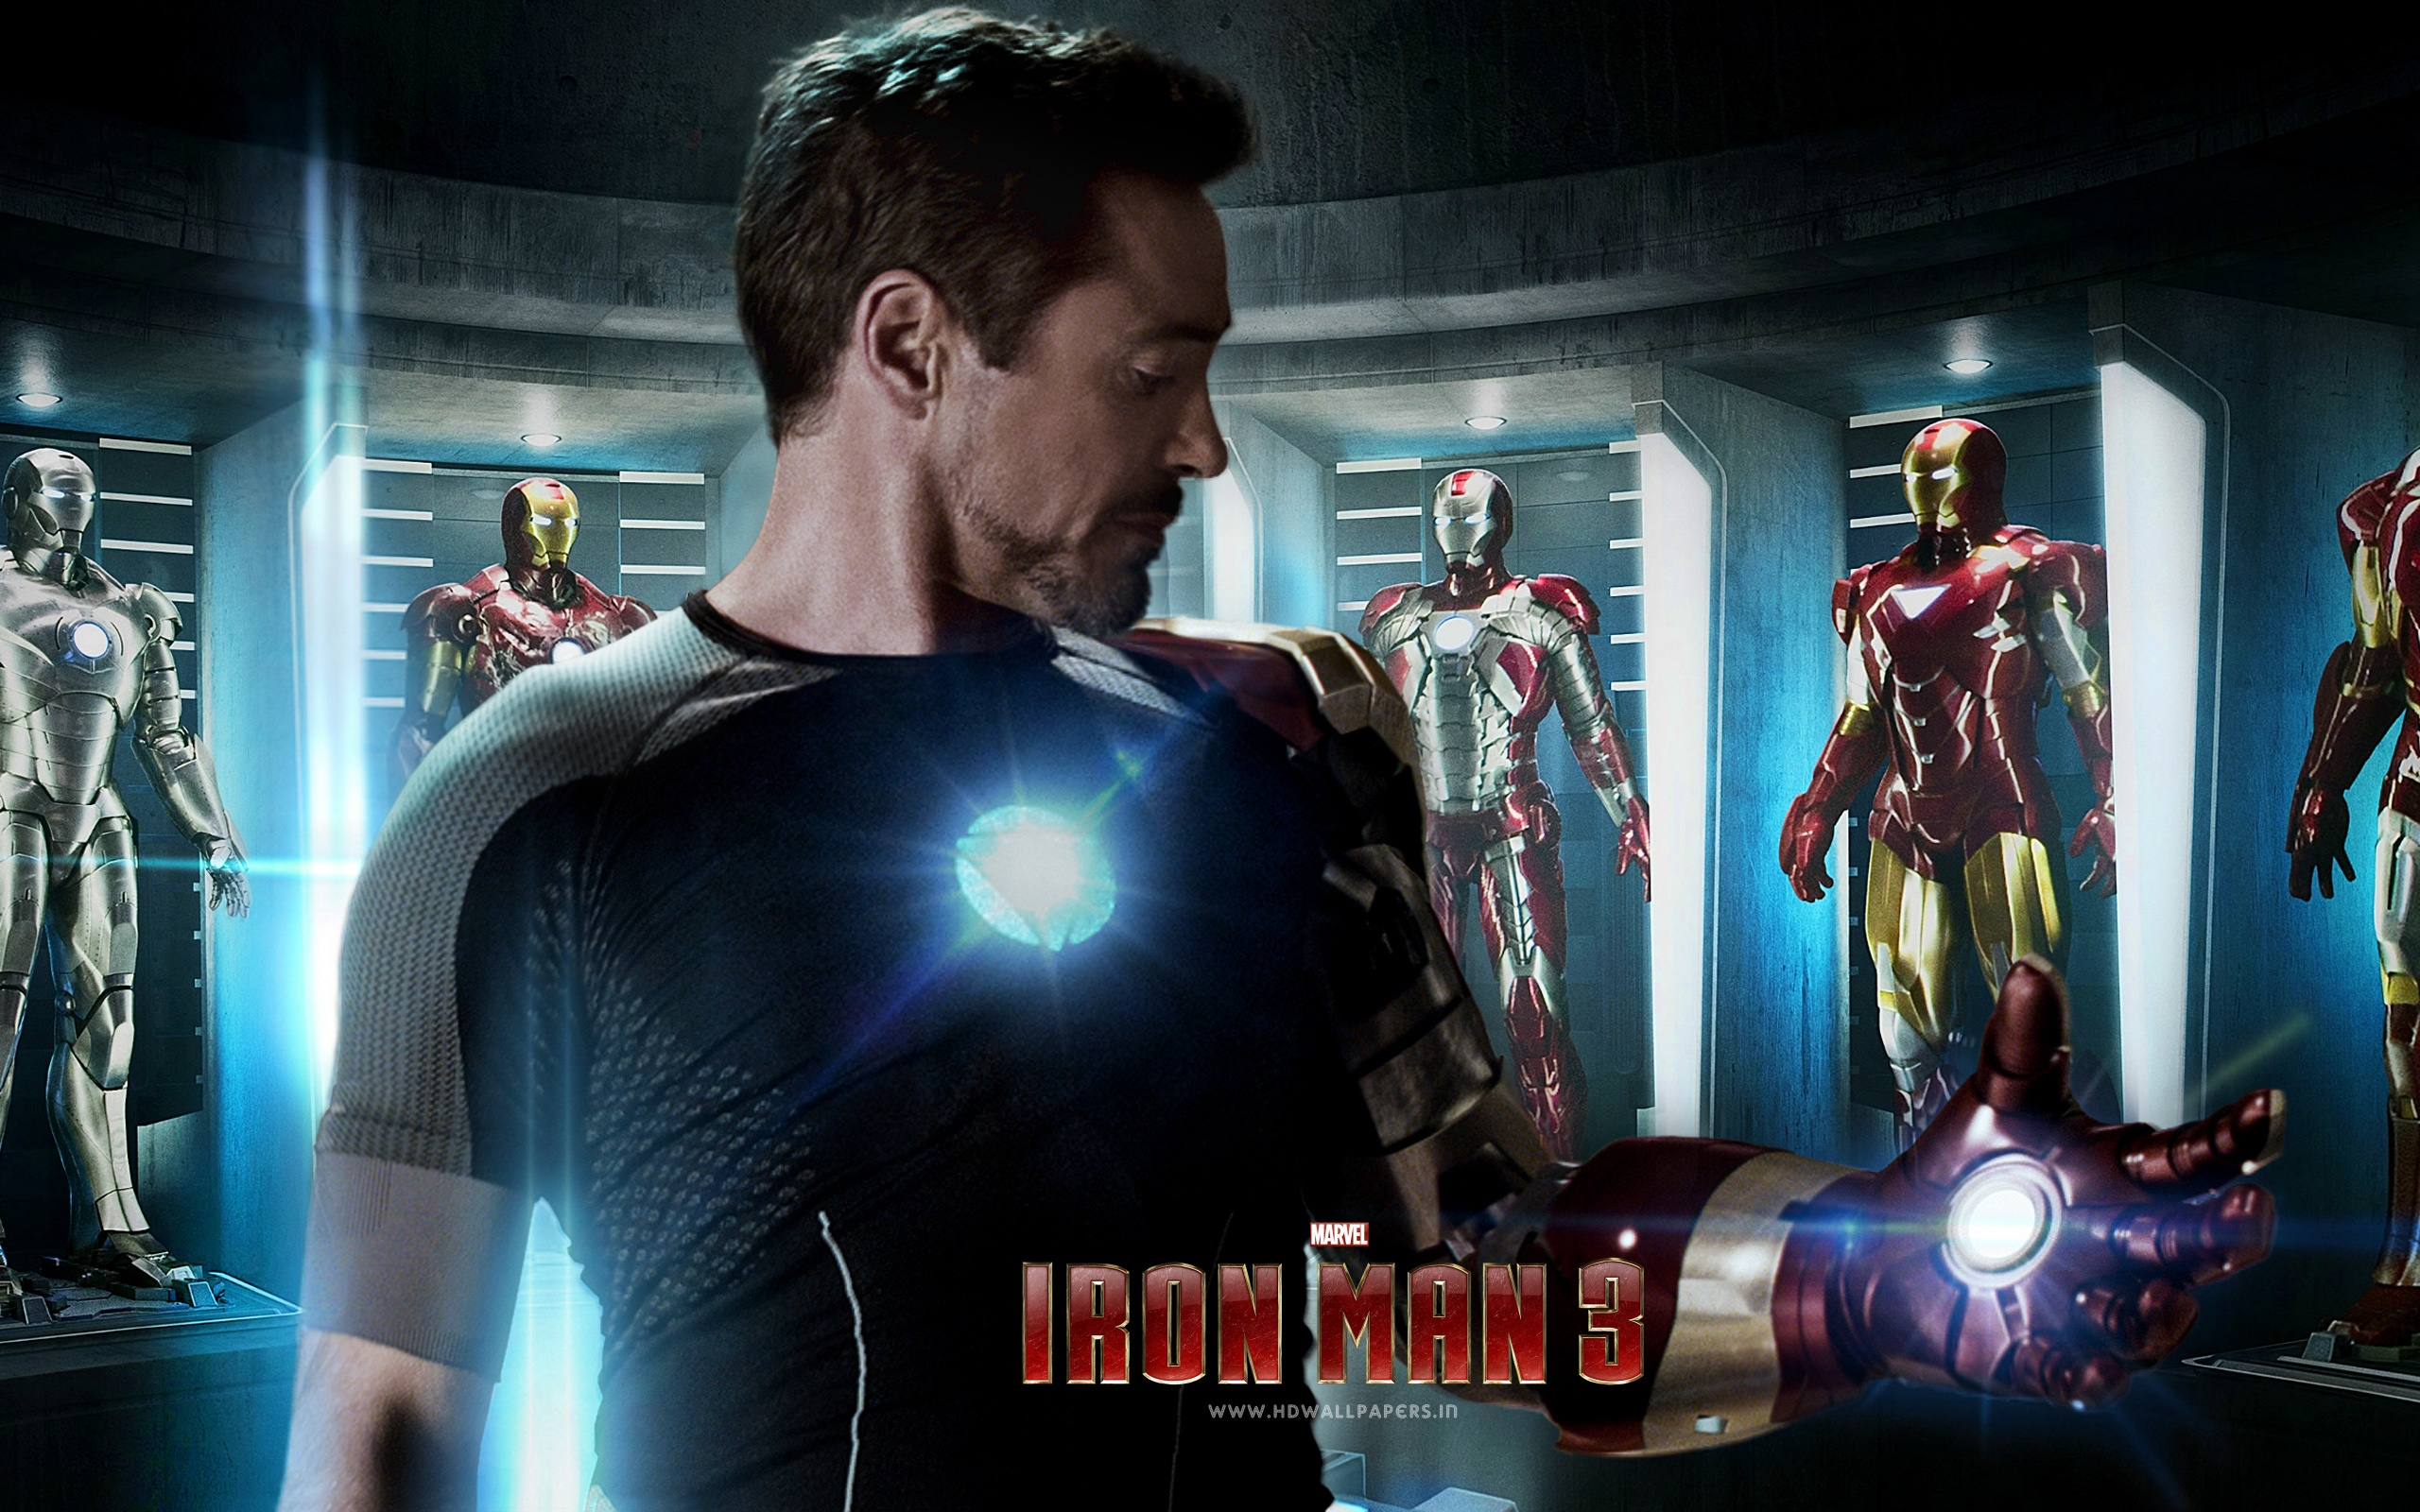 2013 iron man 3 wallpapers in jpg format for free download